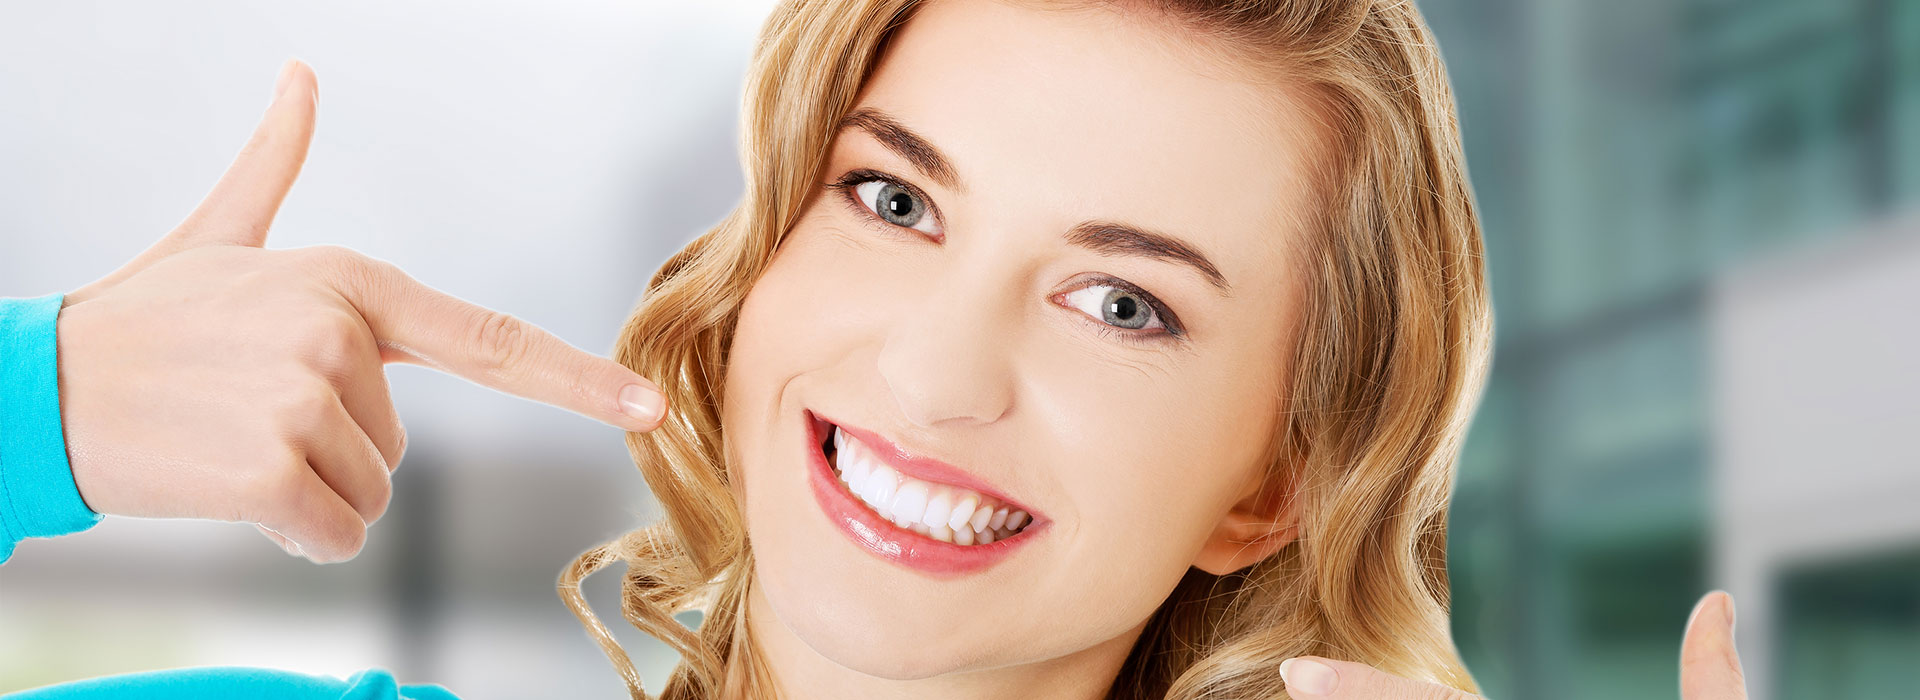 Poughkeepsie NY Cosmetic Dental Treatments